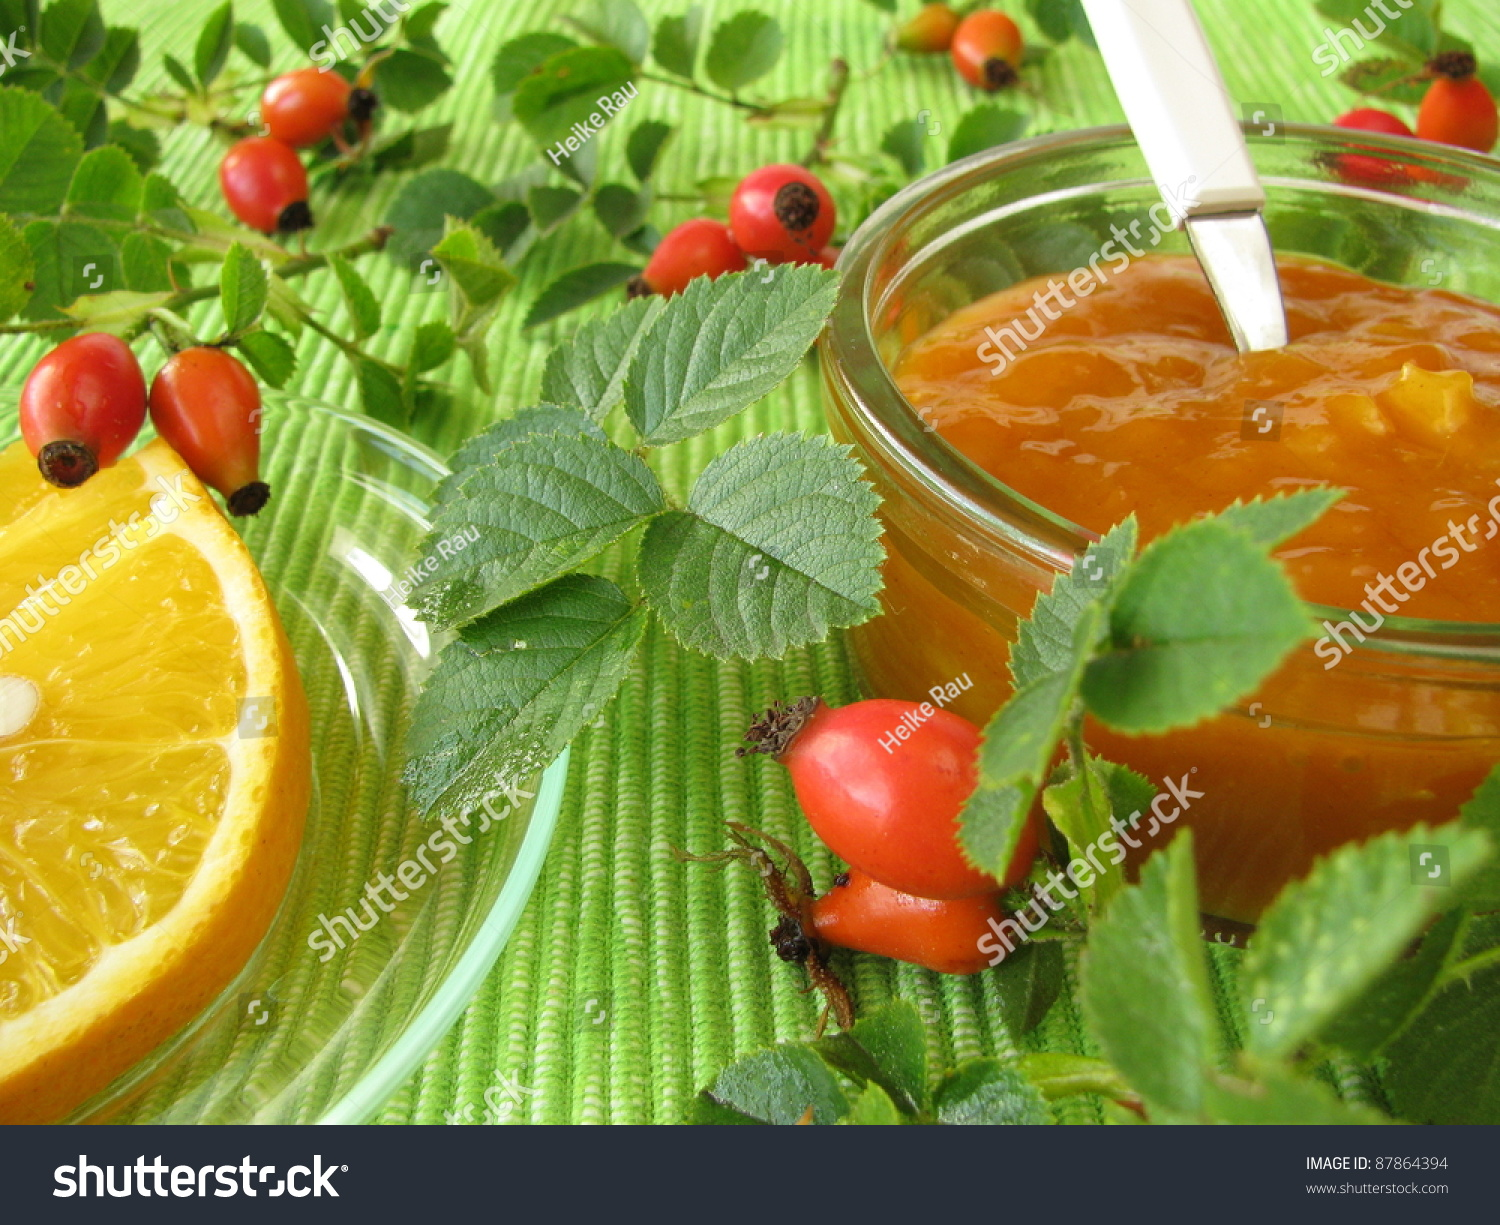 Jam with rose hips and oranges stock photo 87864394 shutterstock - What to do with rosehips jelly and vinegar ...